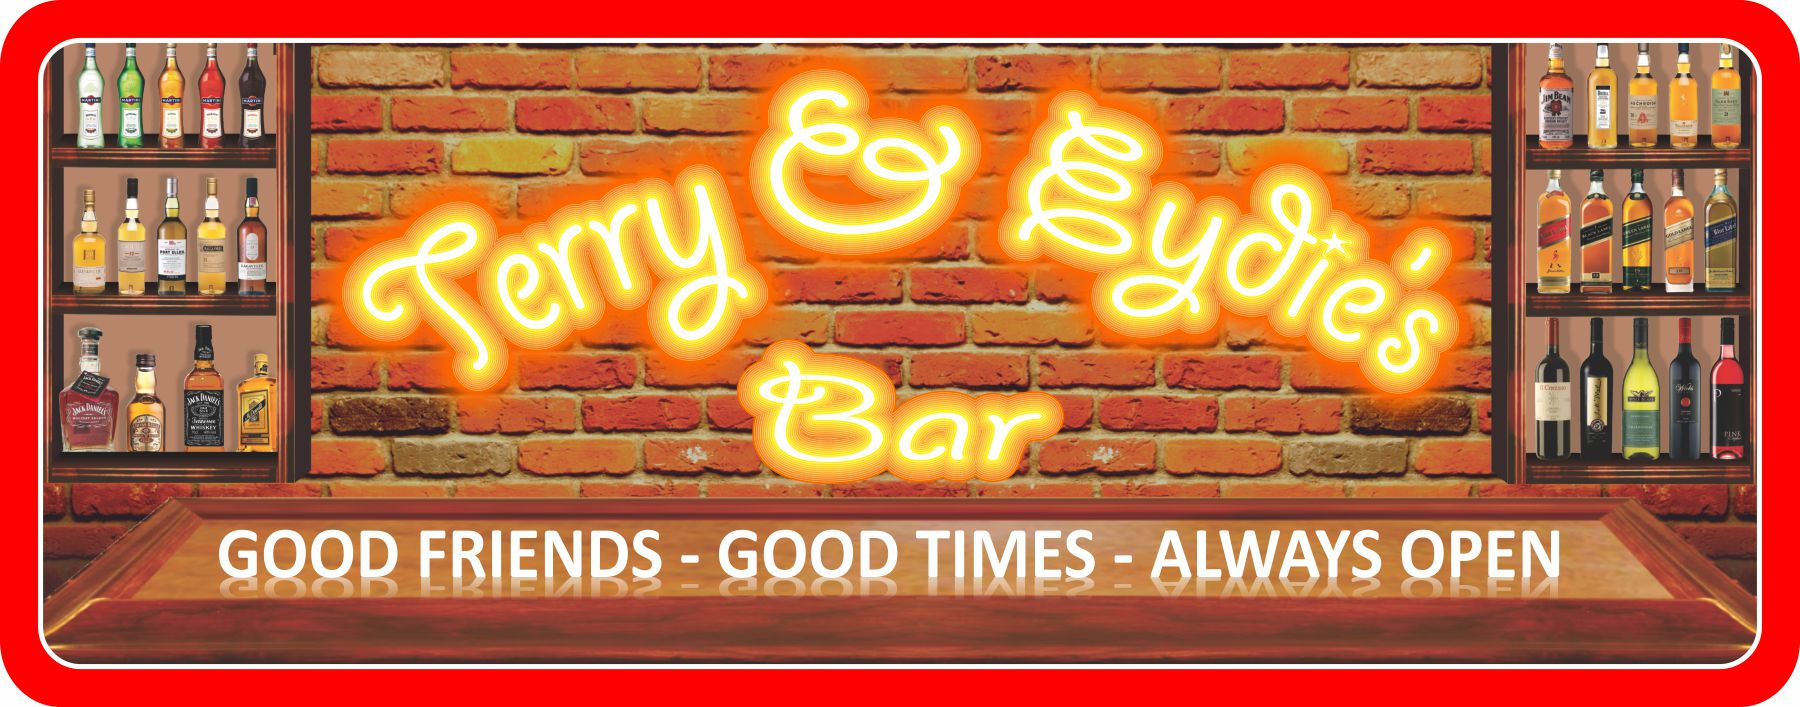 Bar Sign | Personalized Sign | Fun Sign Factory